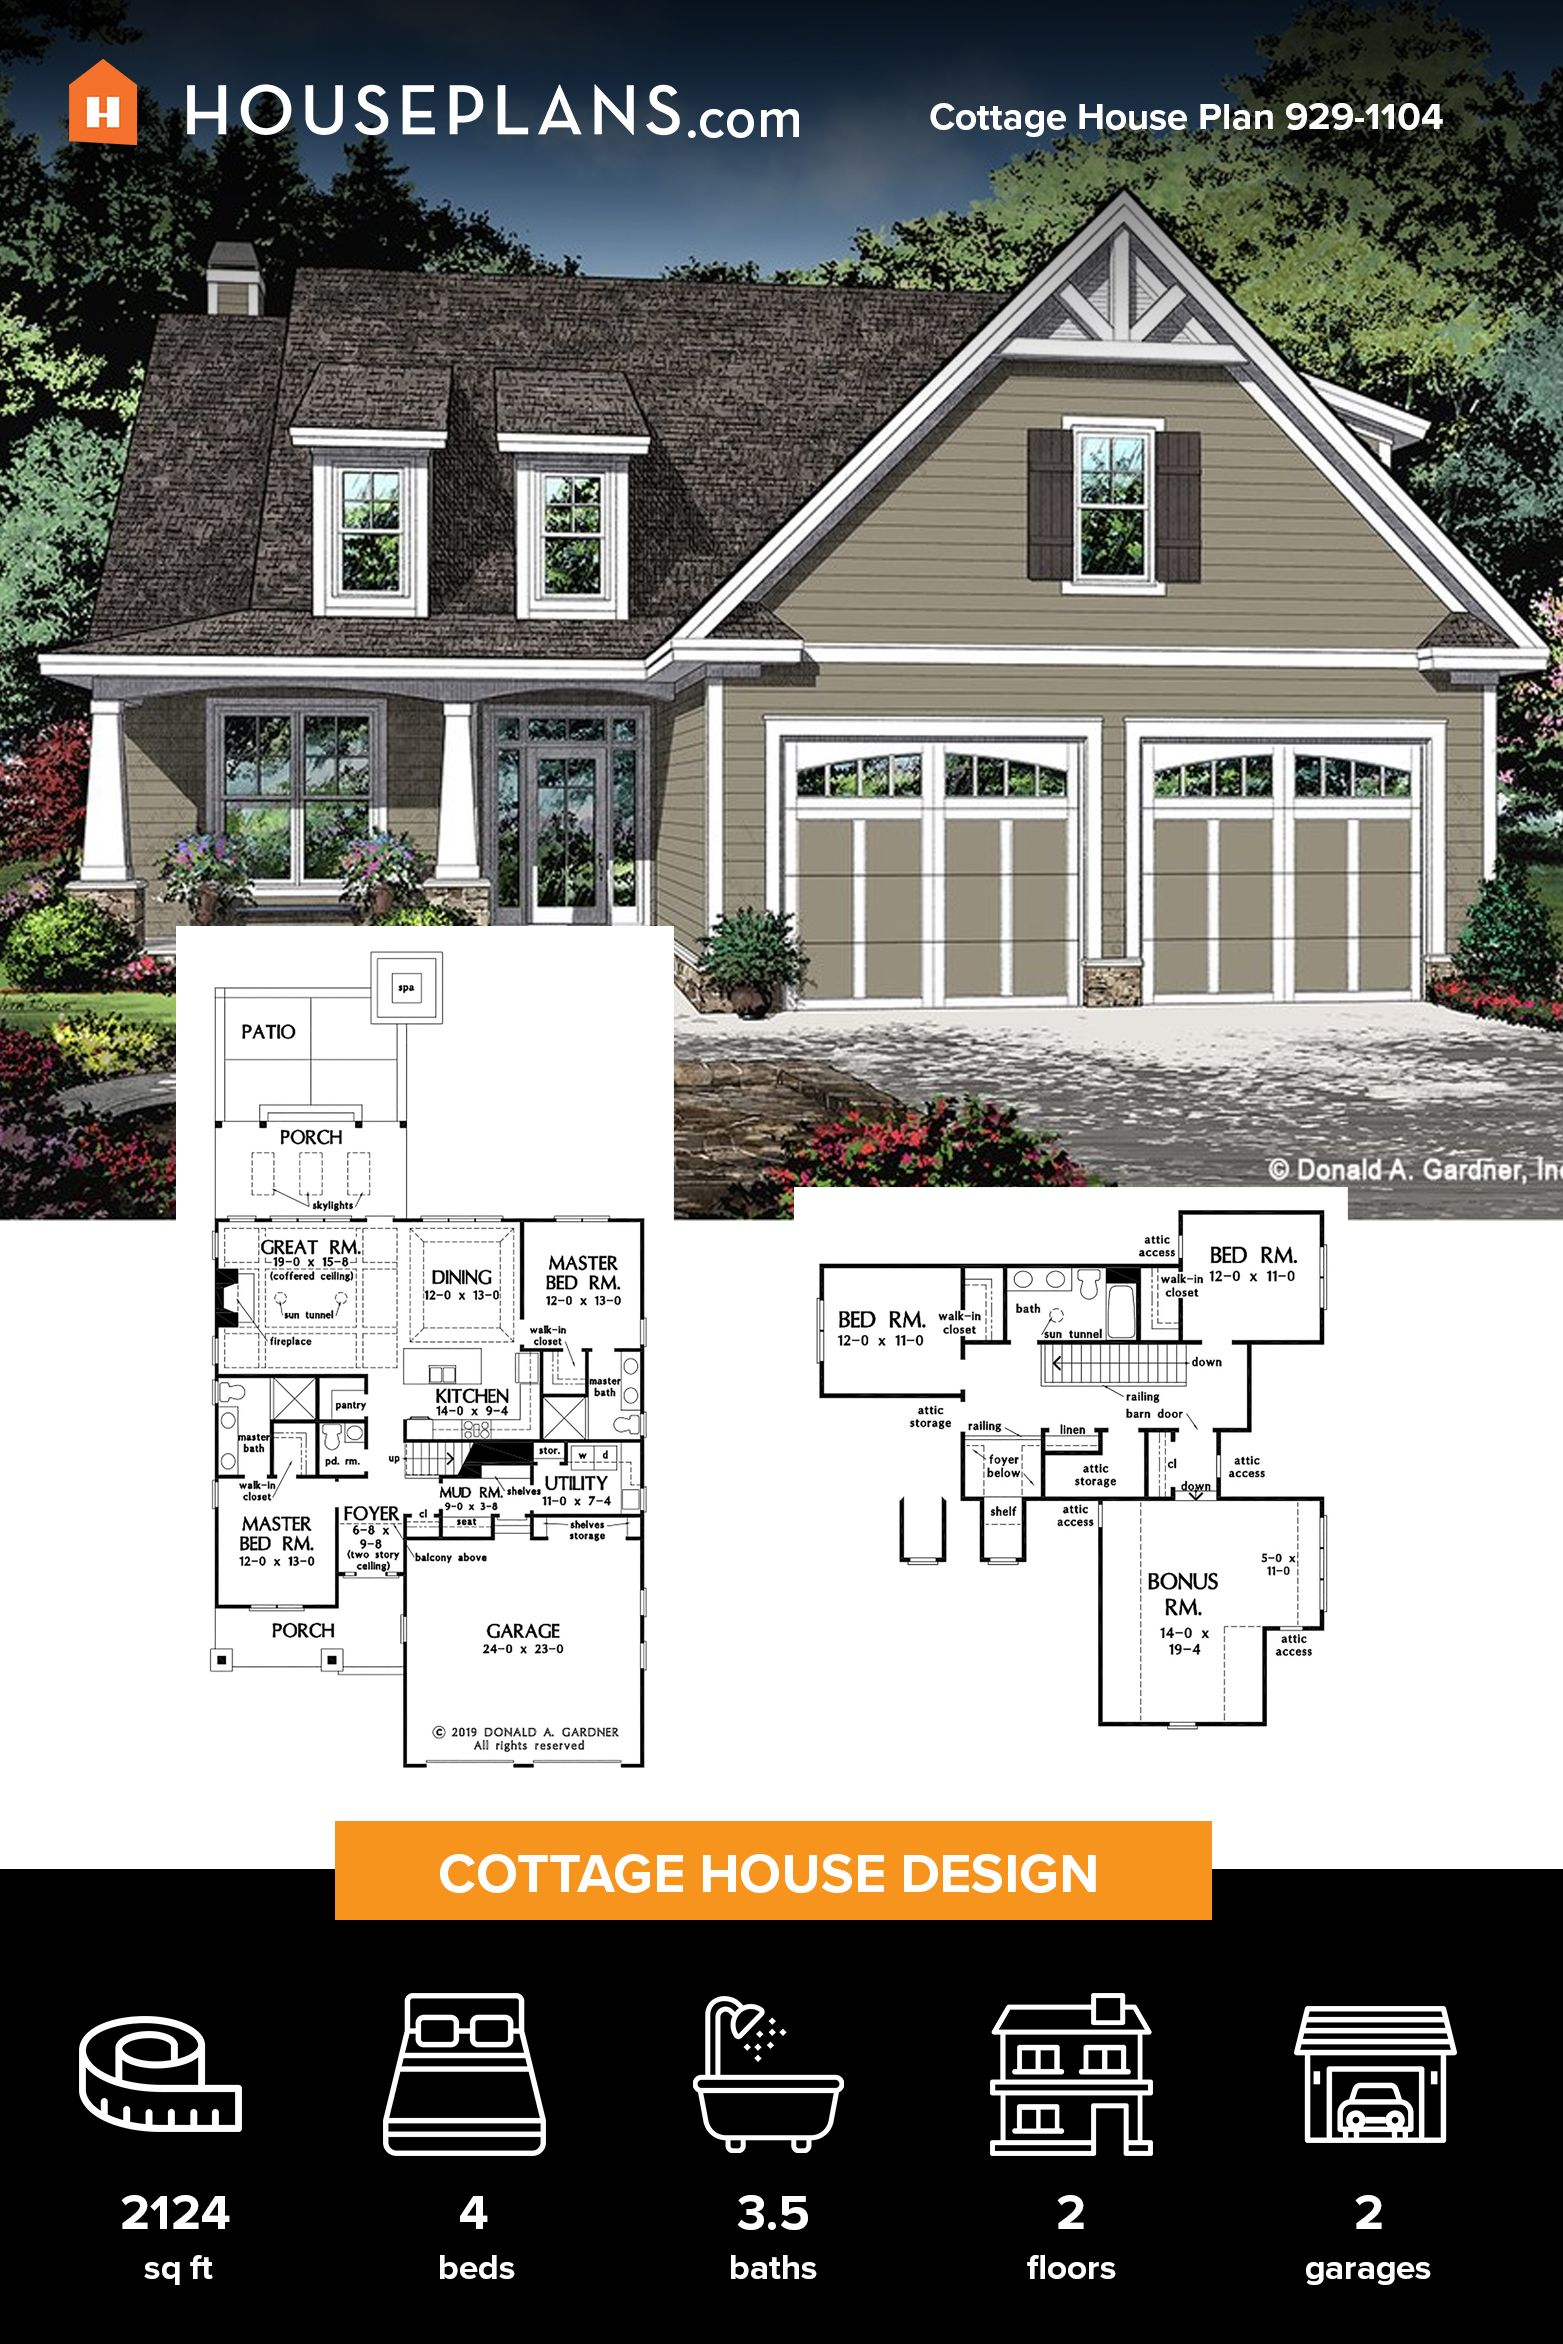 Cottage Style House Plan 4 Beds 3 5 Baths 2124 Sq Ft Plan 929 1104 Craftsman House Plans House Plans Cottage Style House Plans